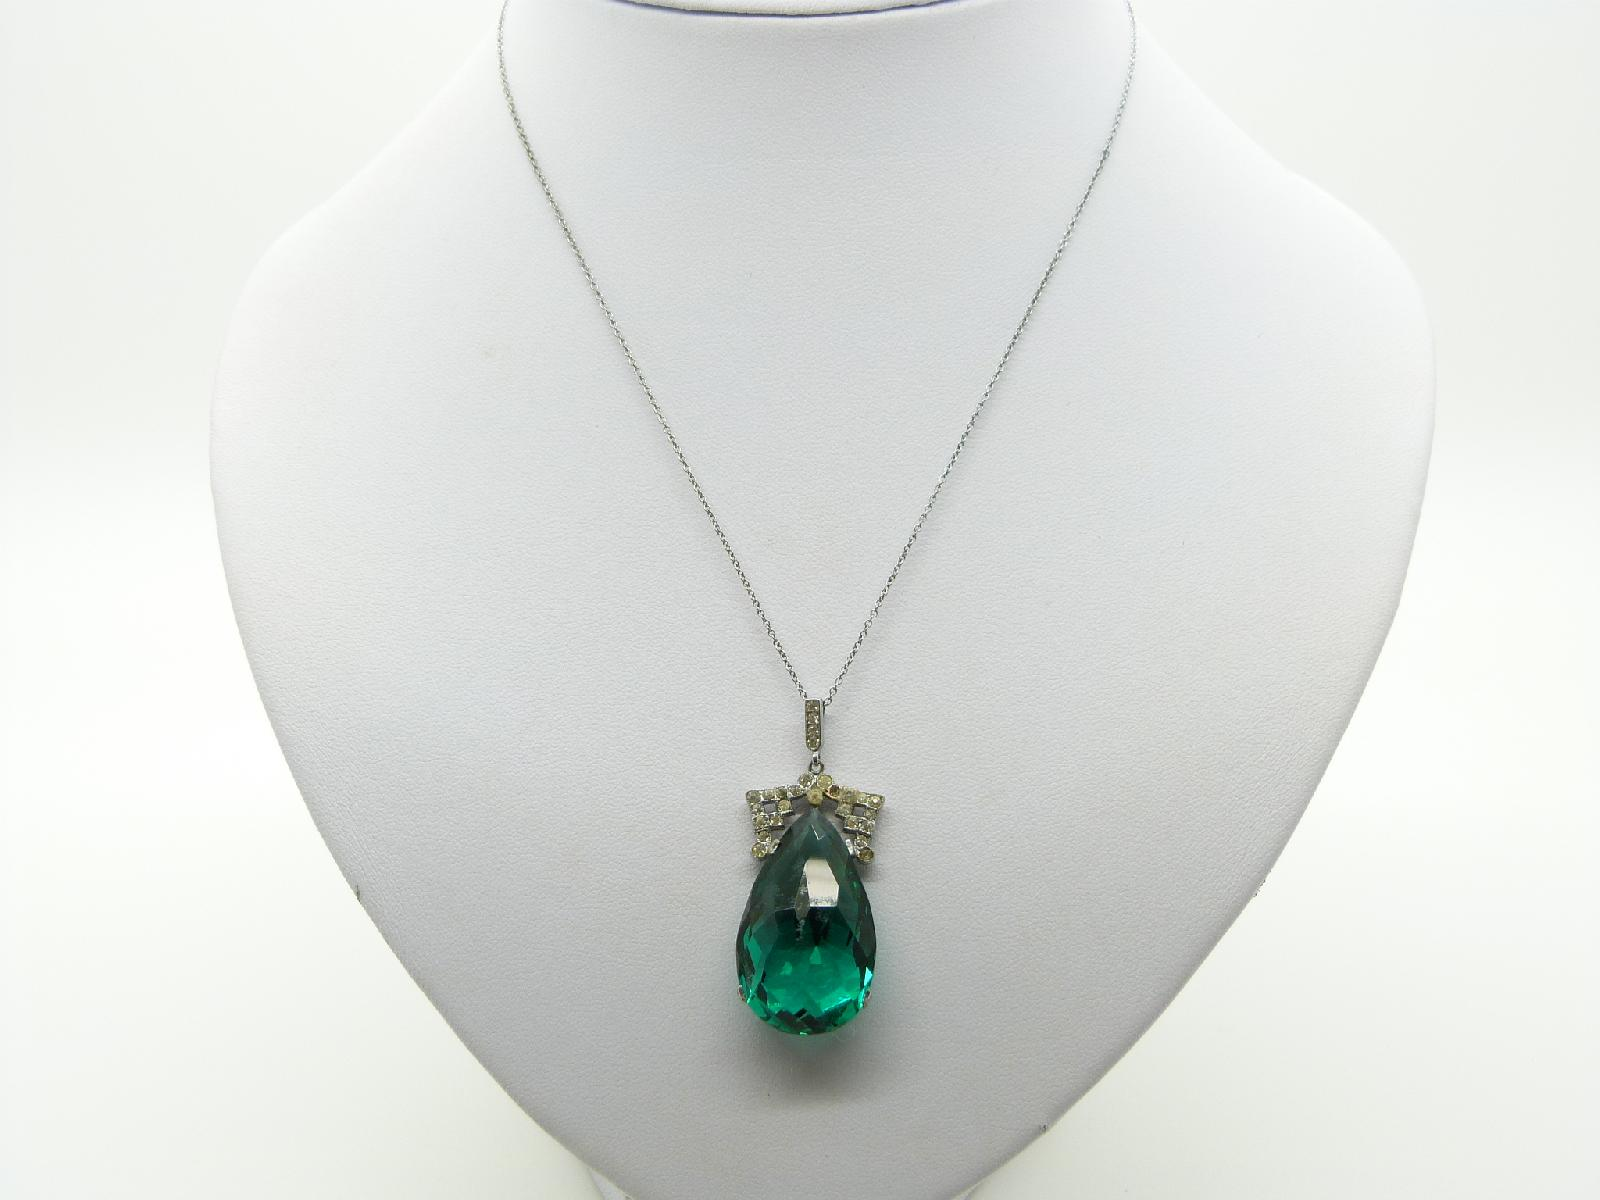 £10.00 - Vintage 30s Pretty Emerald Green Glass Crystal Pendant and Chain